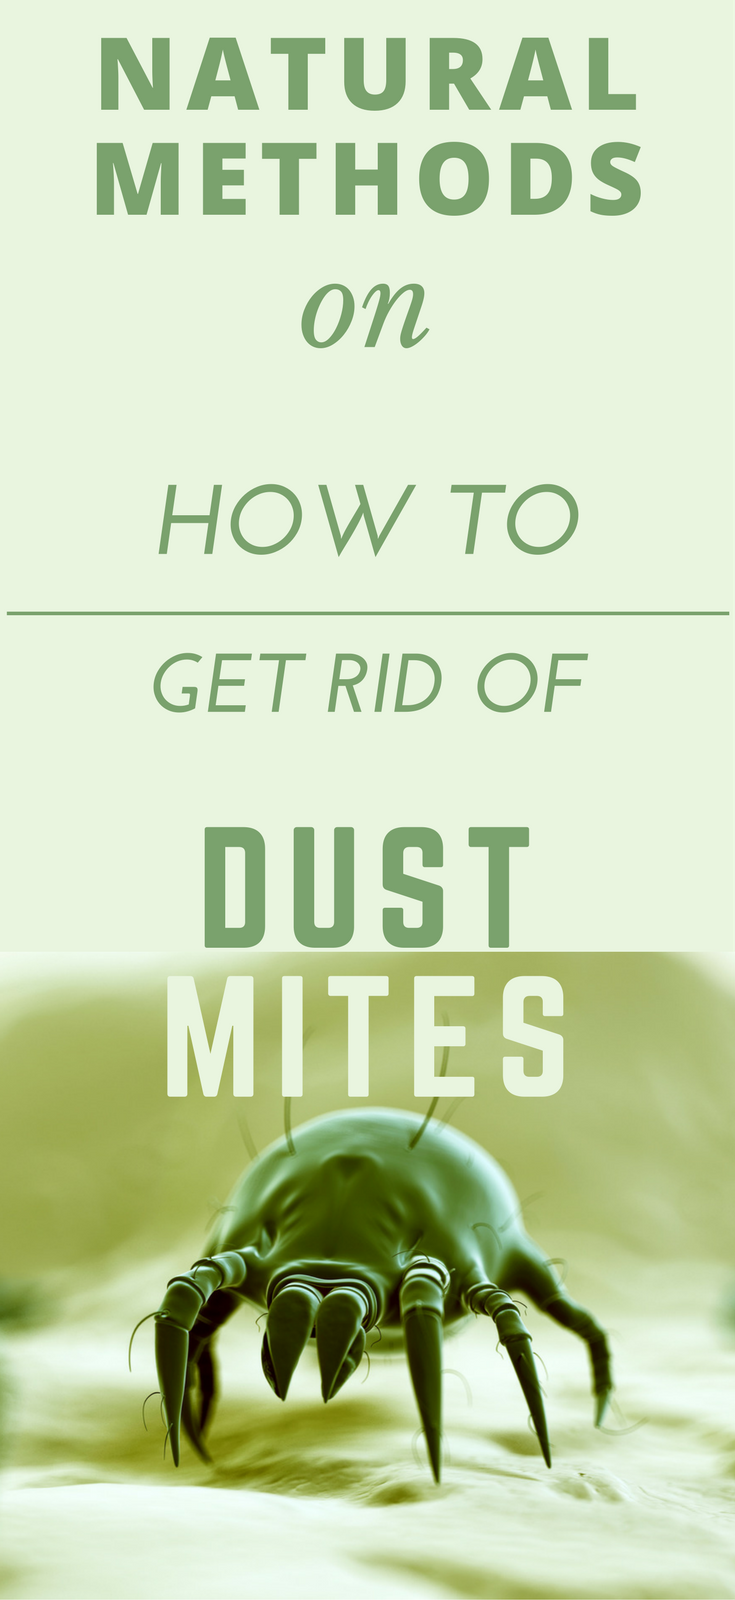 Natural Methods On How To Get Rid Of Dust Mites